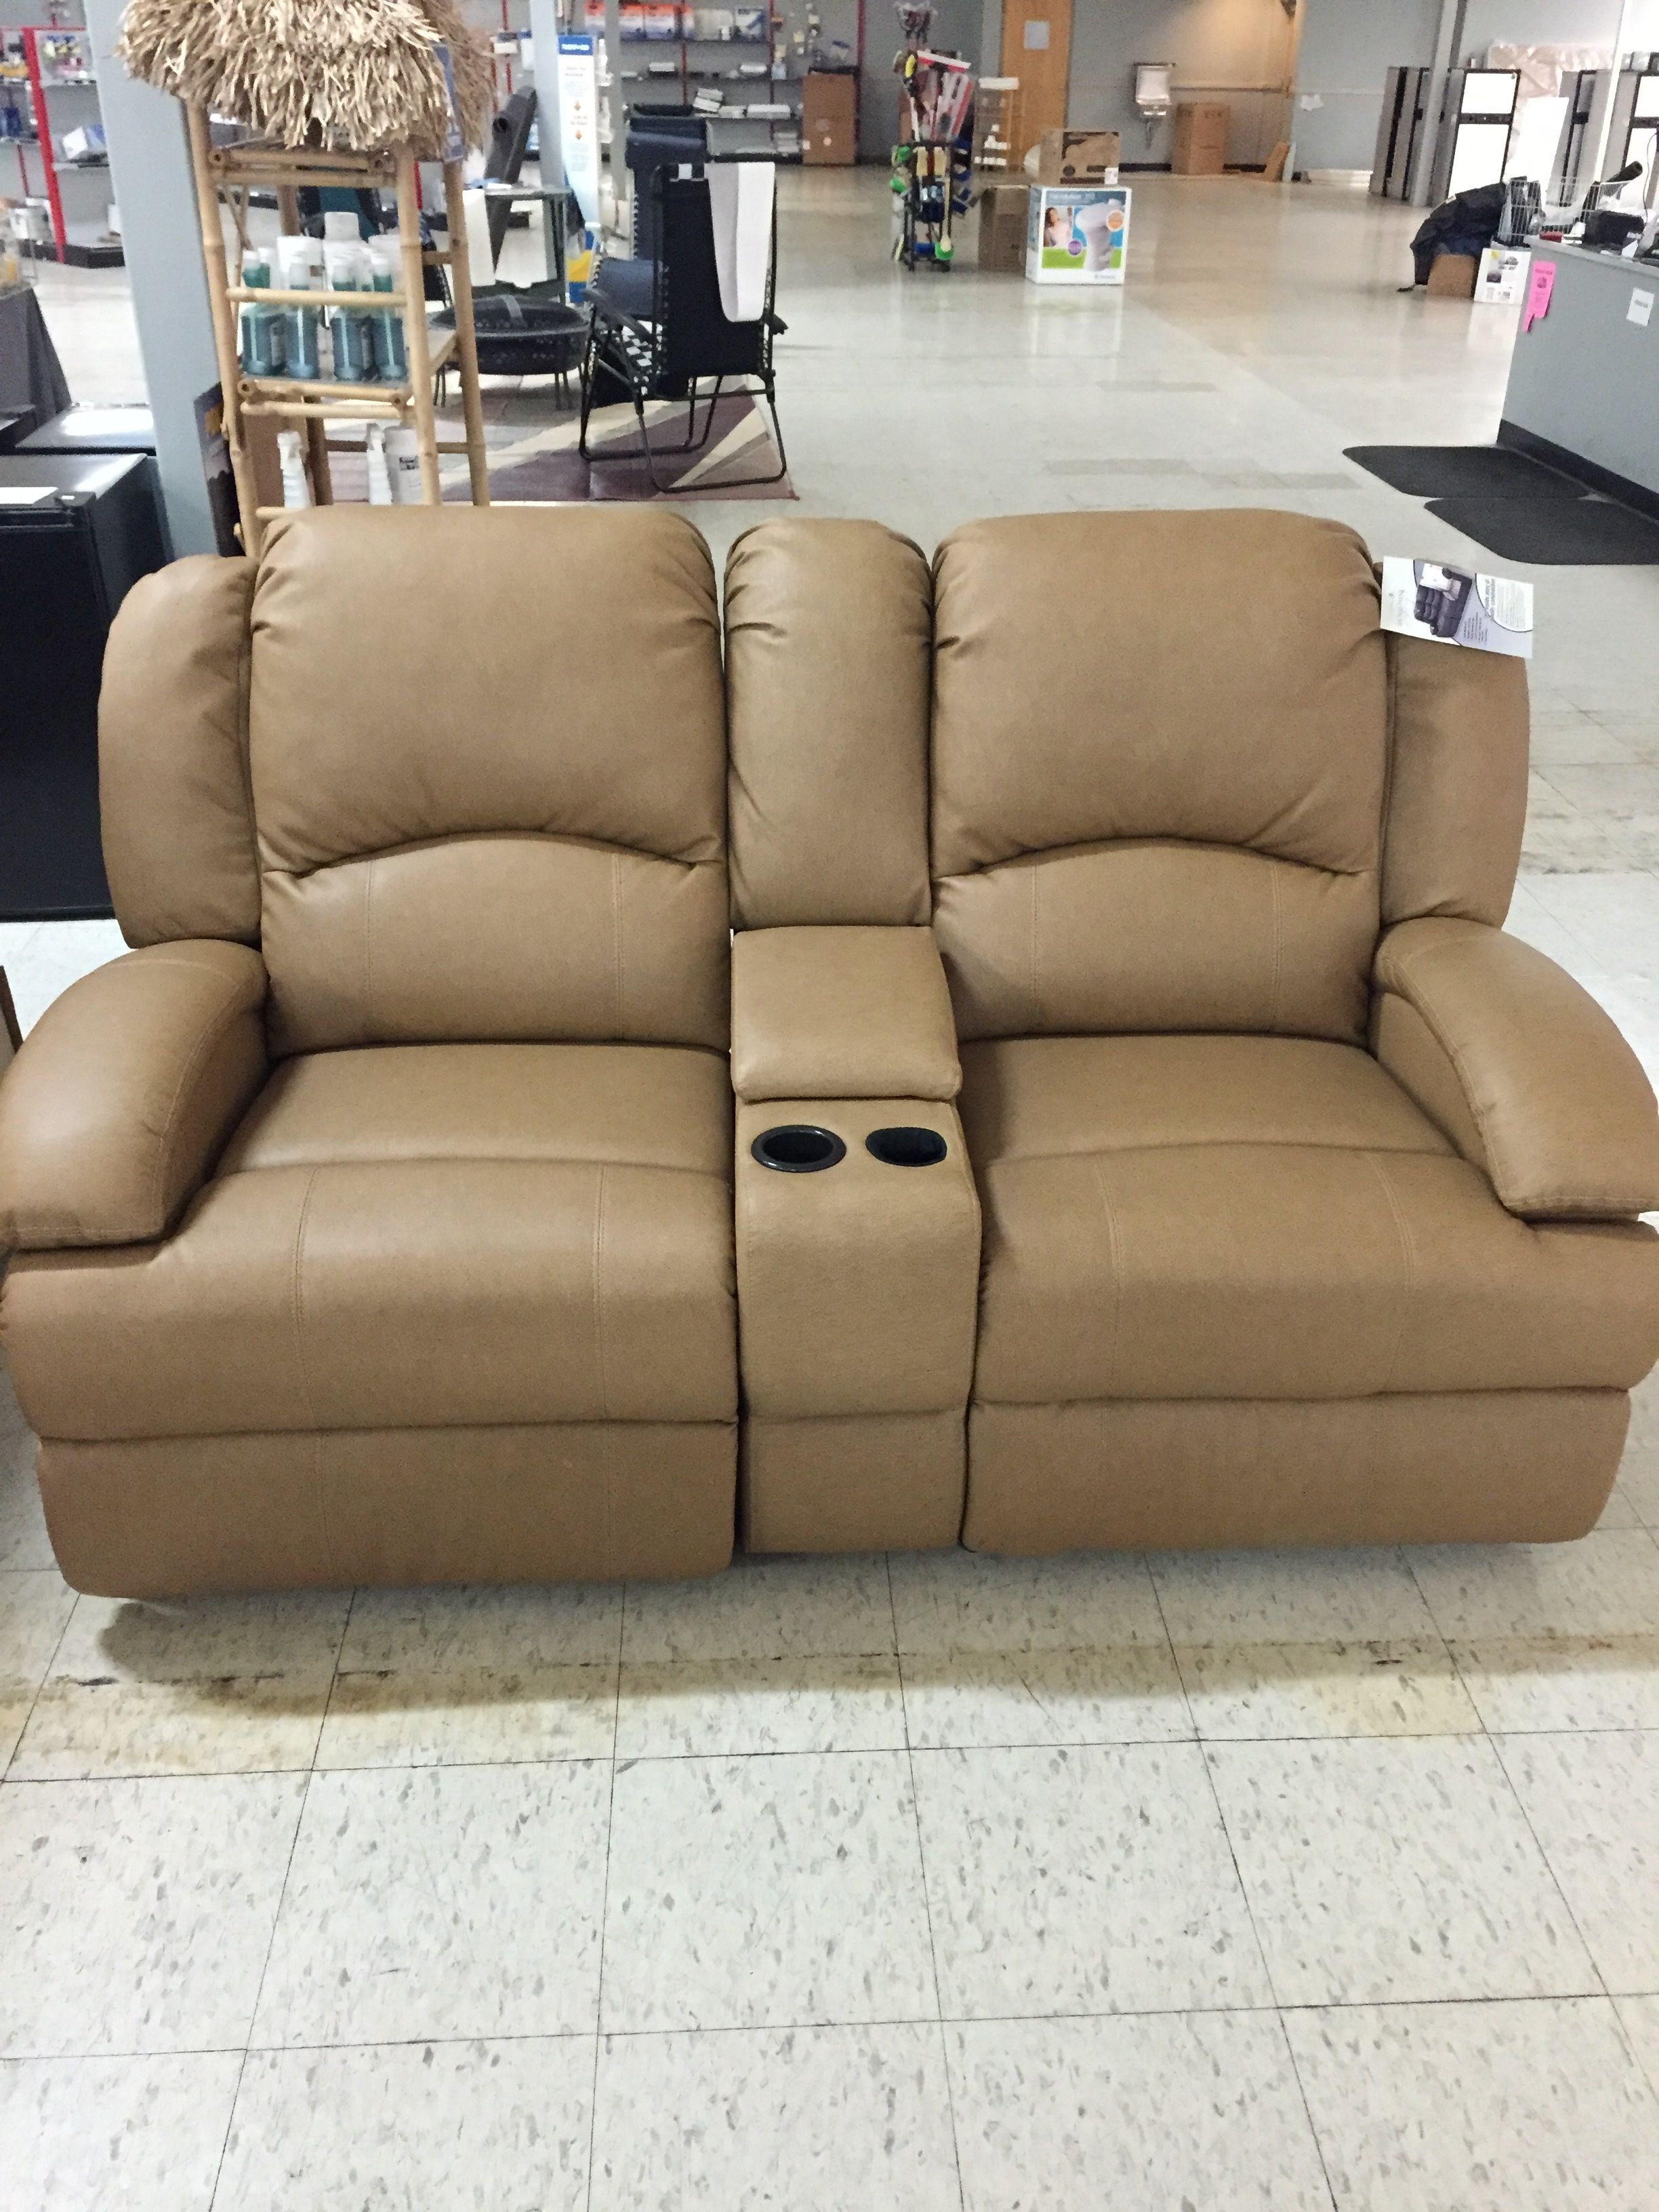 double recliner chairs with cup holders leather of bath lansdown dual storage counsel and